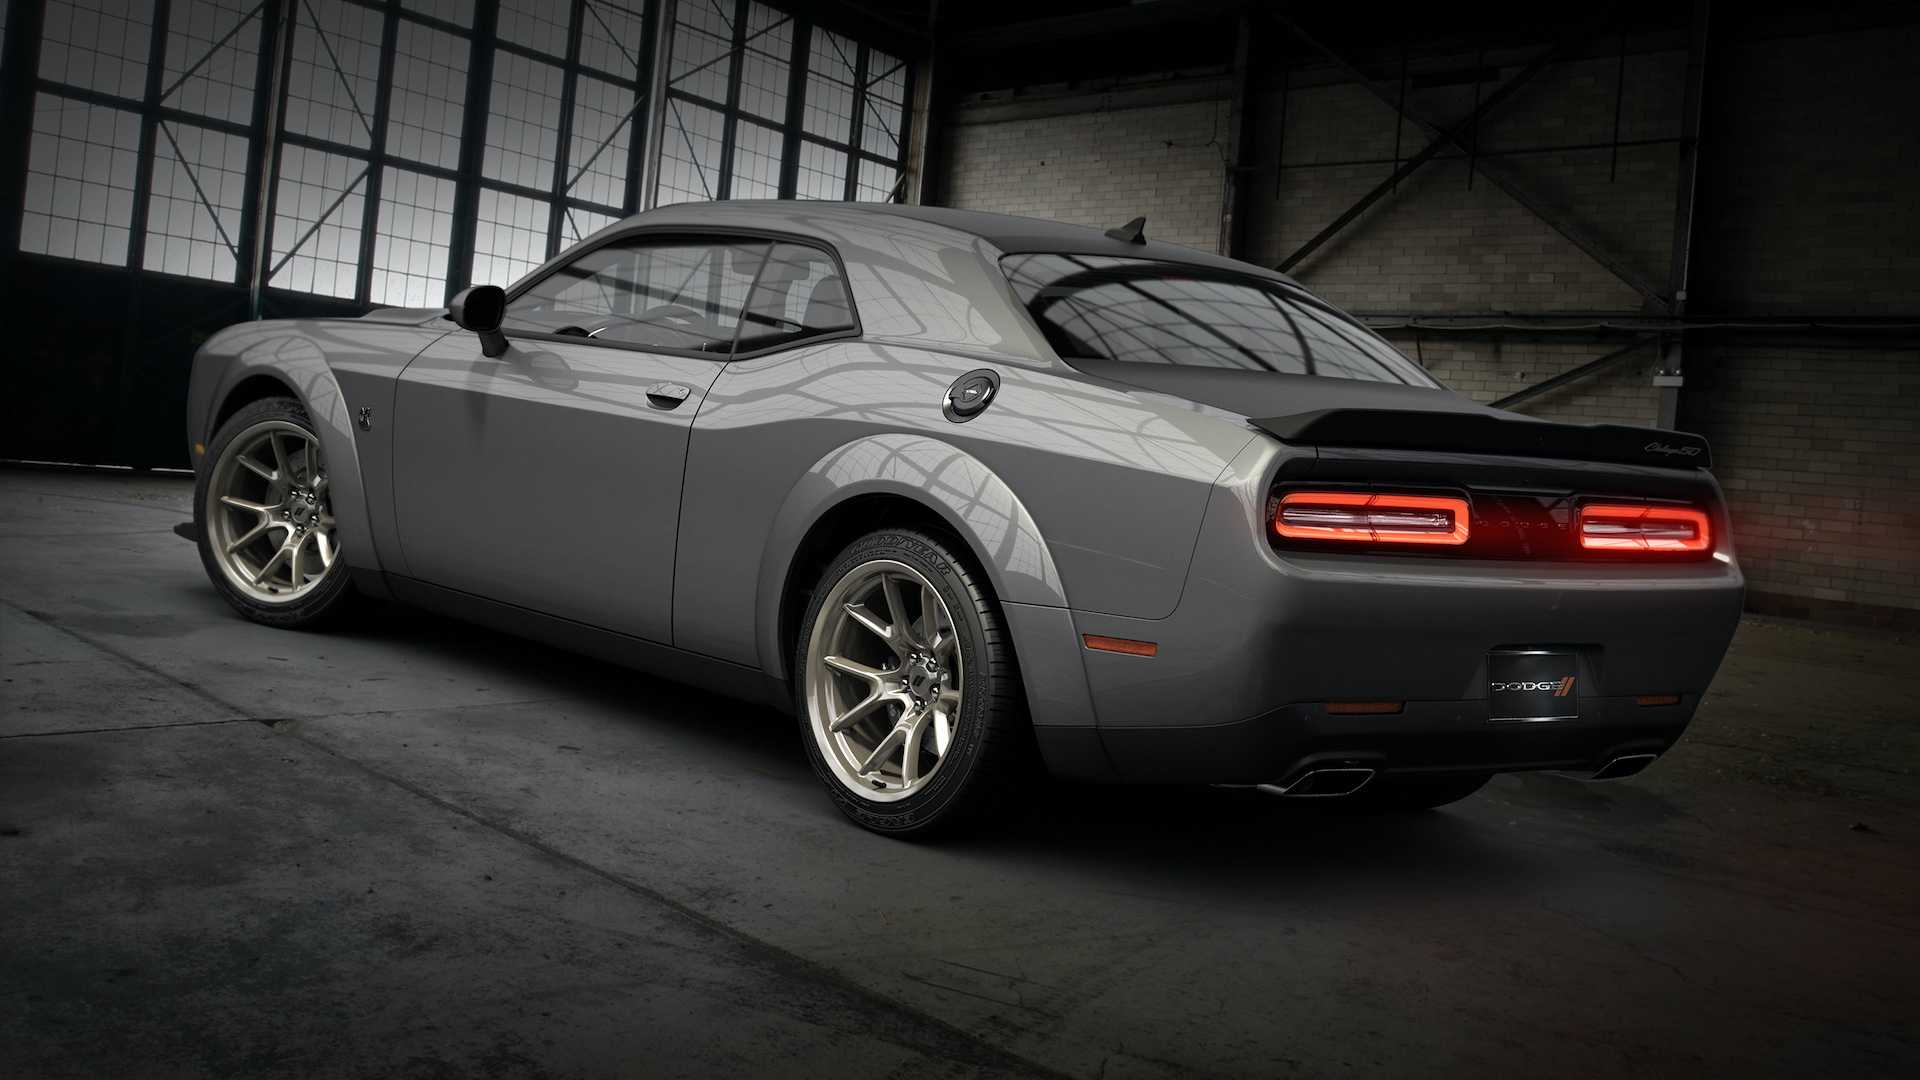 2020 Dodge Challenger Arrives With 50th Anniversary Commemorative Edition Livery Slashgear